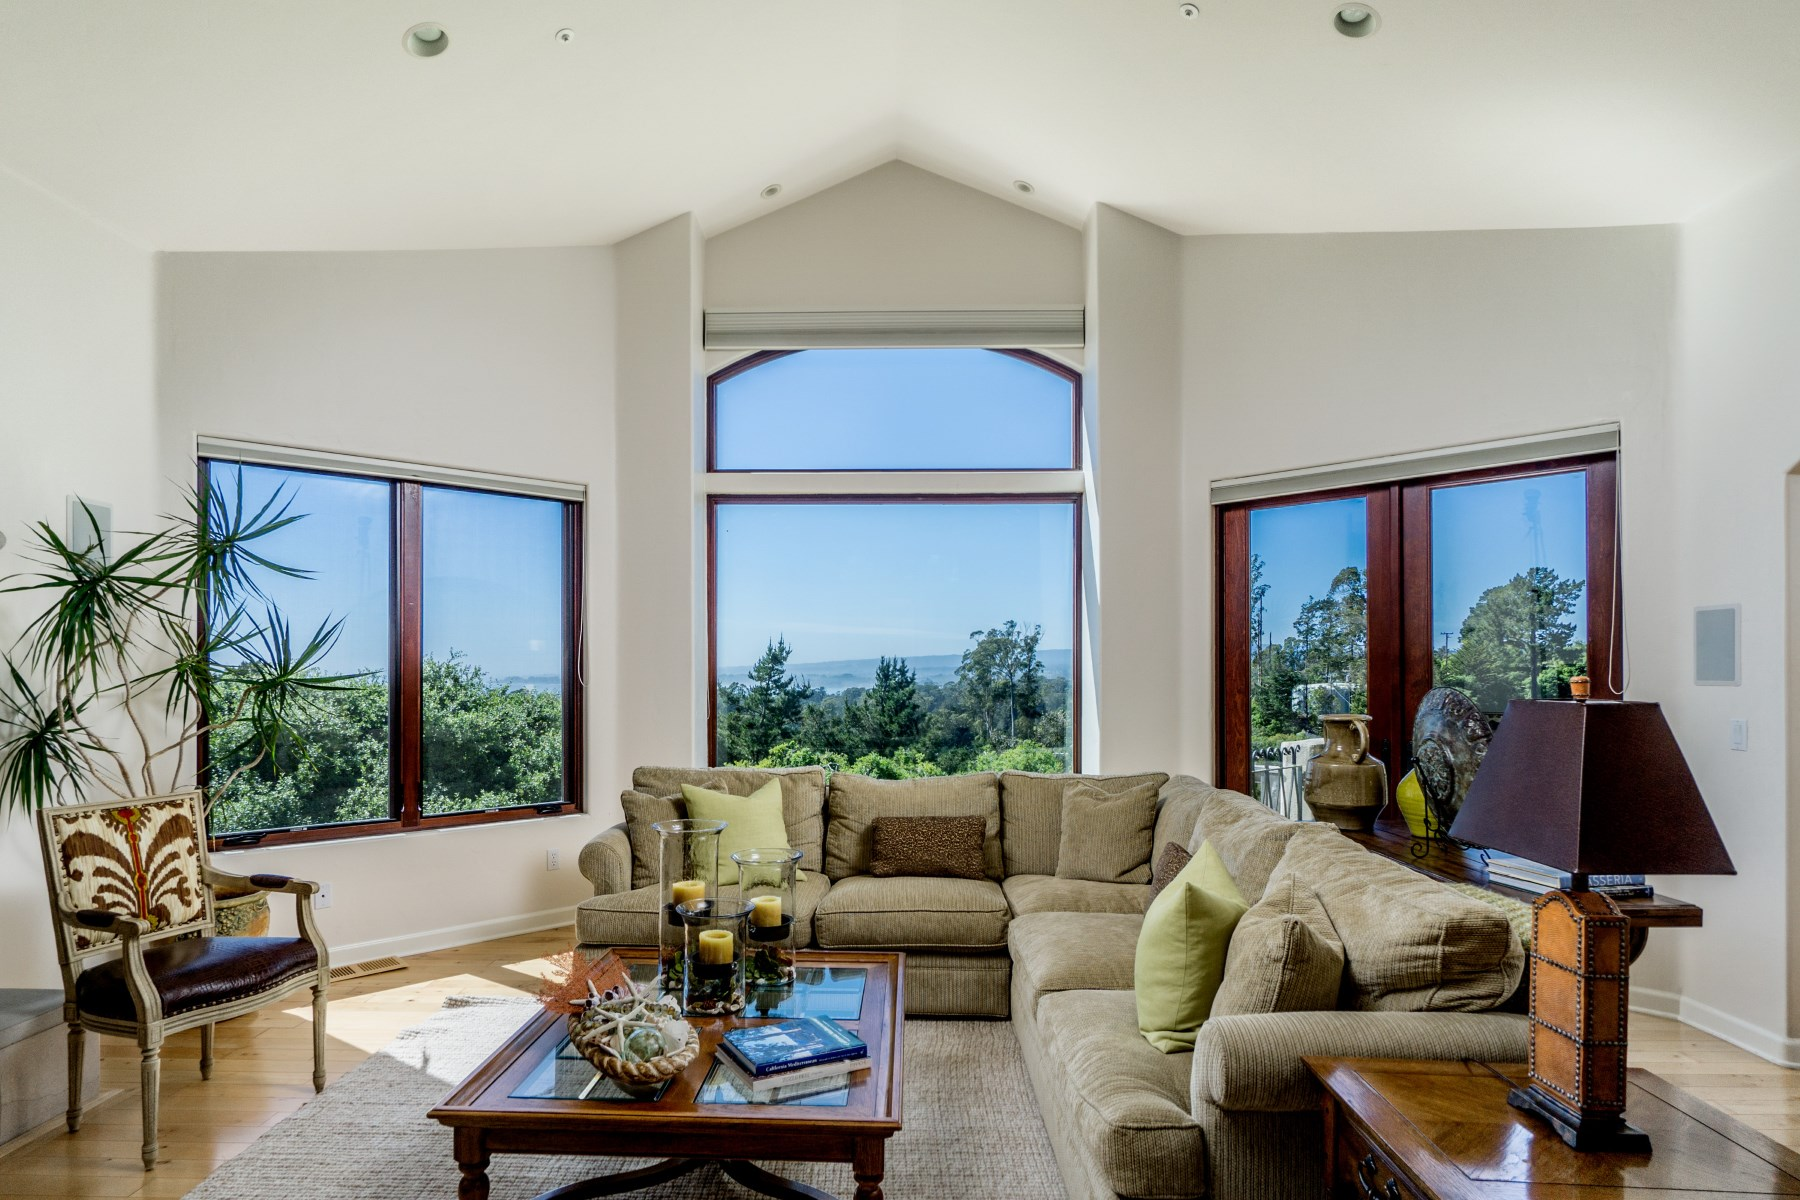 Single Family Home for Sale at Ocean Views from Monterey to Santa Cruz 563 Cuesta Drive, Aptos, California, 95003 United States